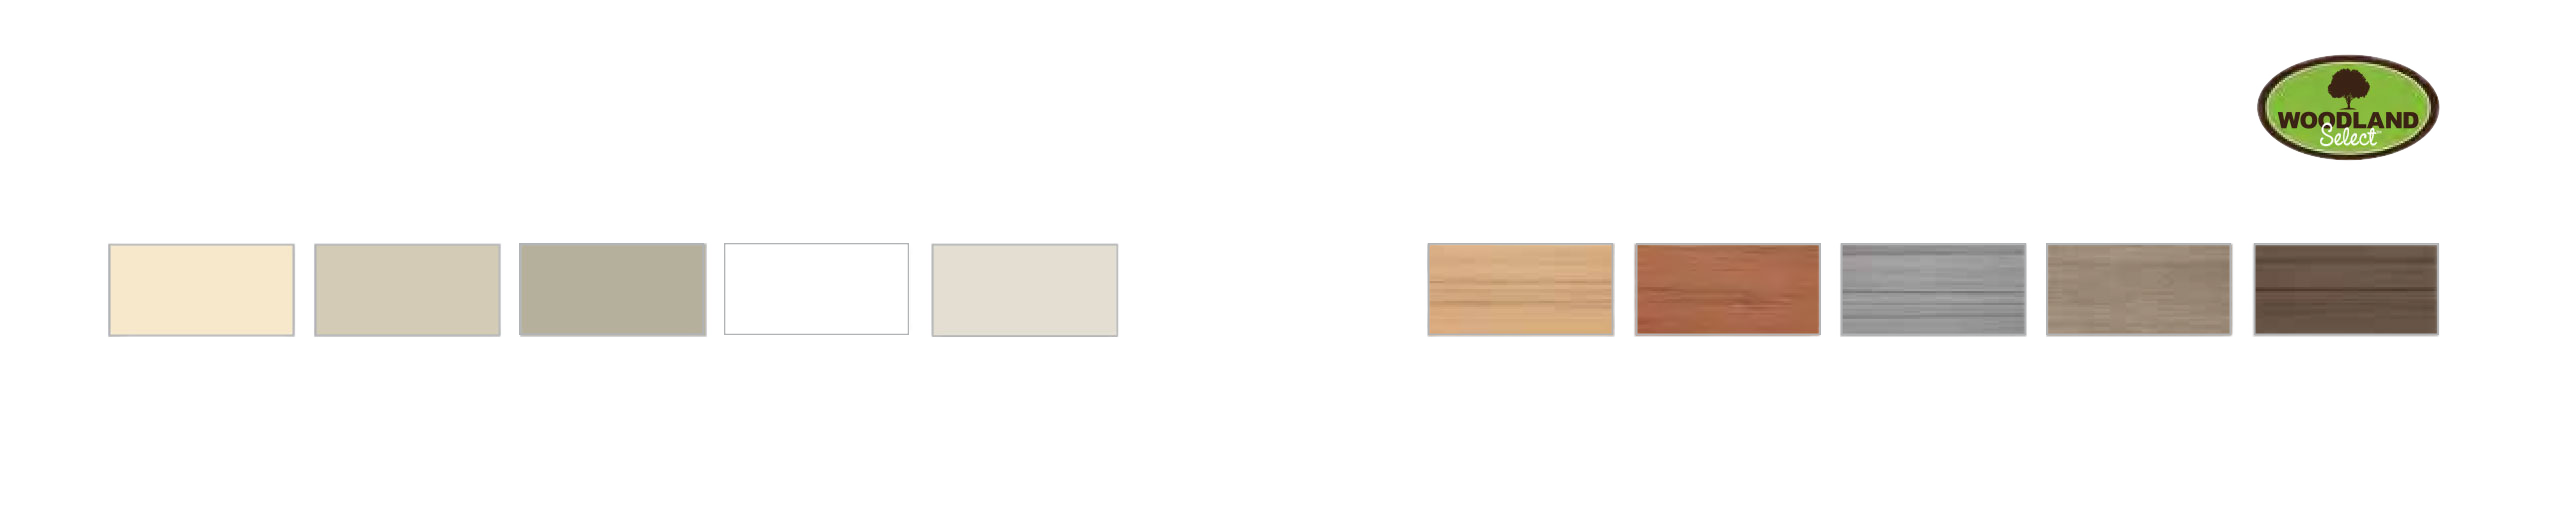 PlyGem Privacy Fence Color Chart